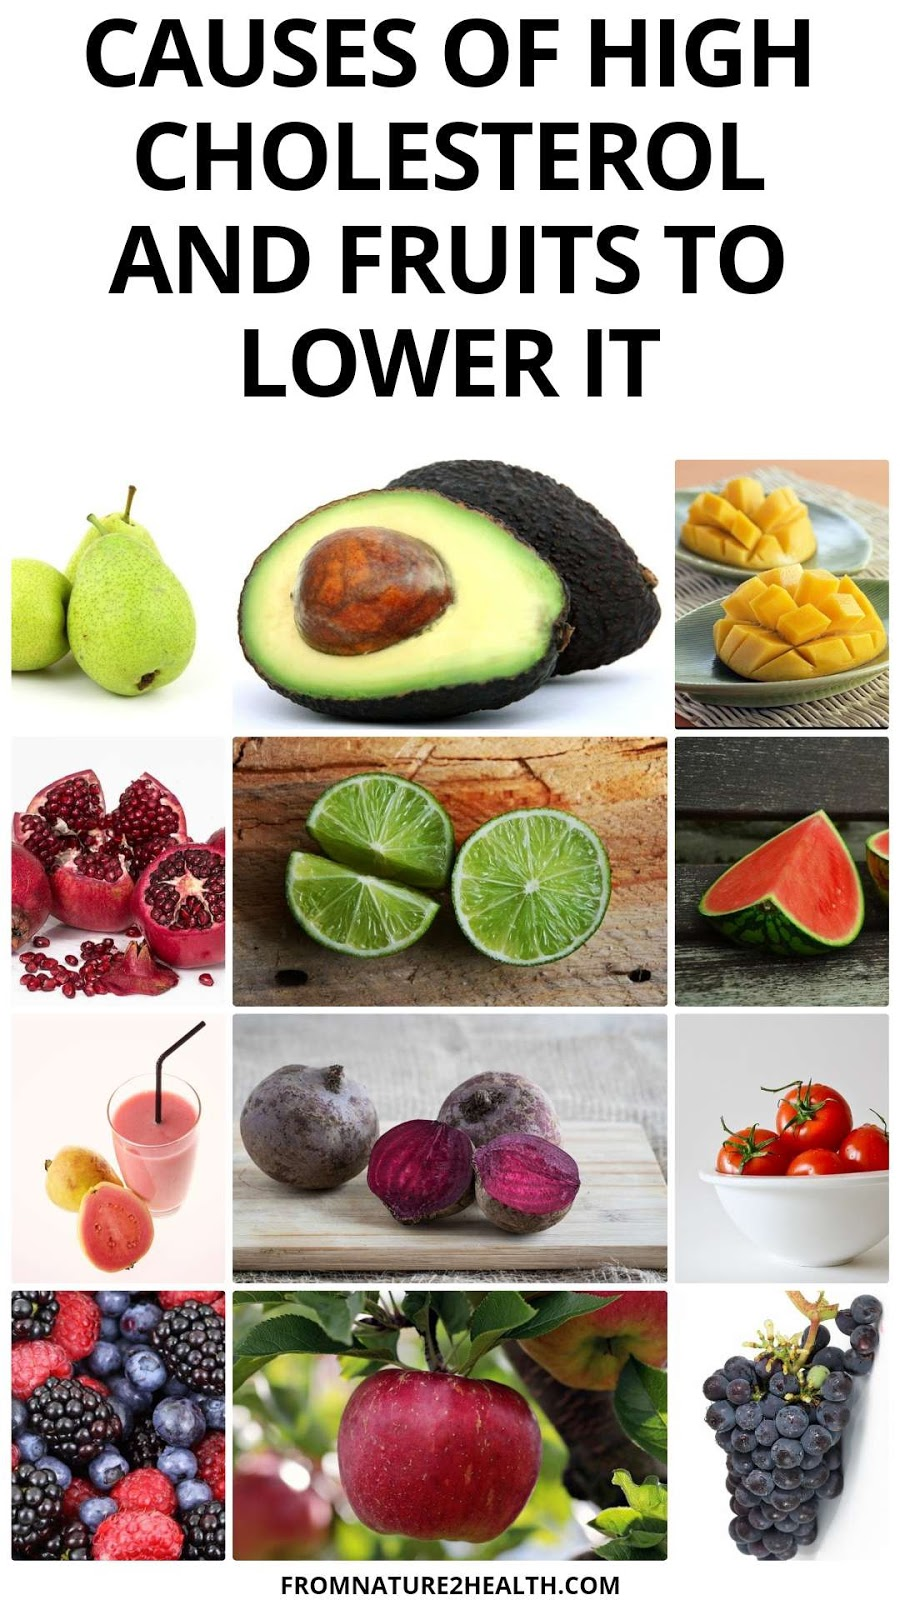 Causes of High Cholesterol and Fruits to Lower It